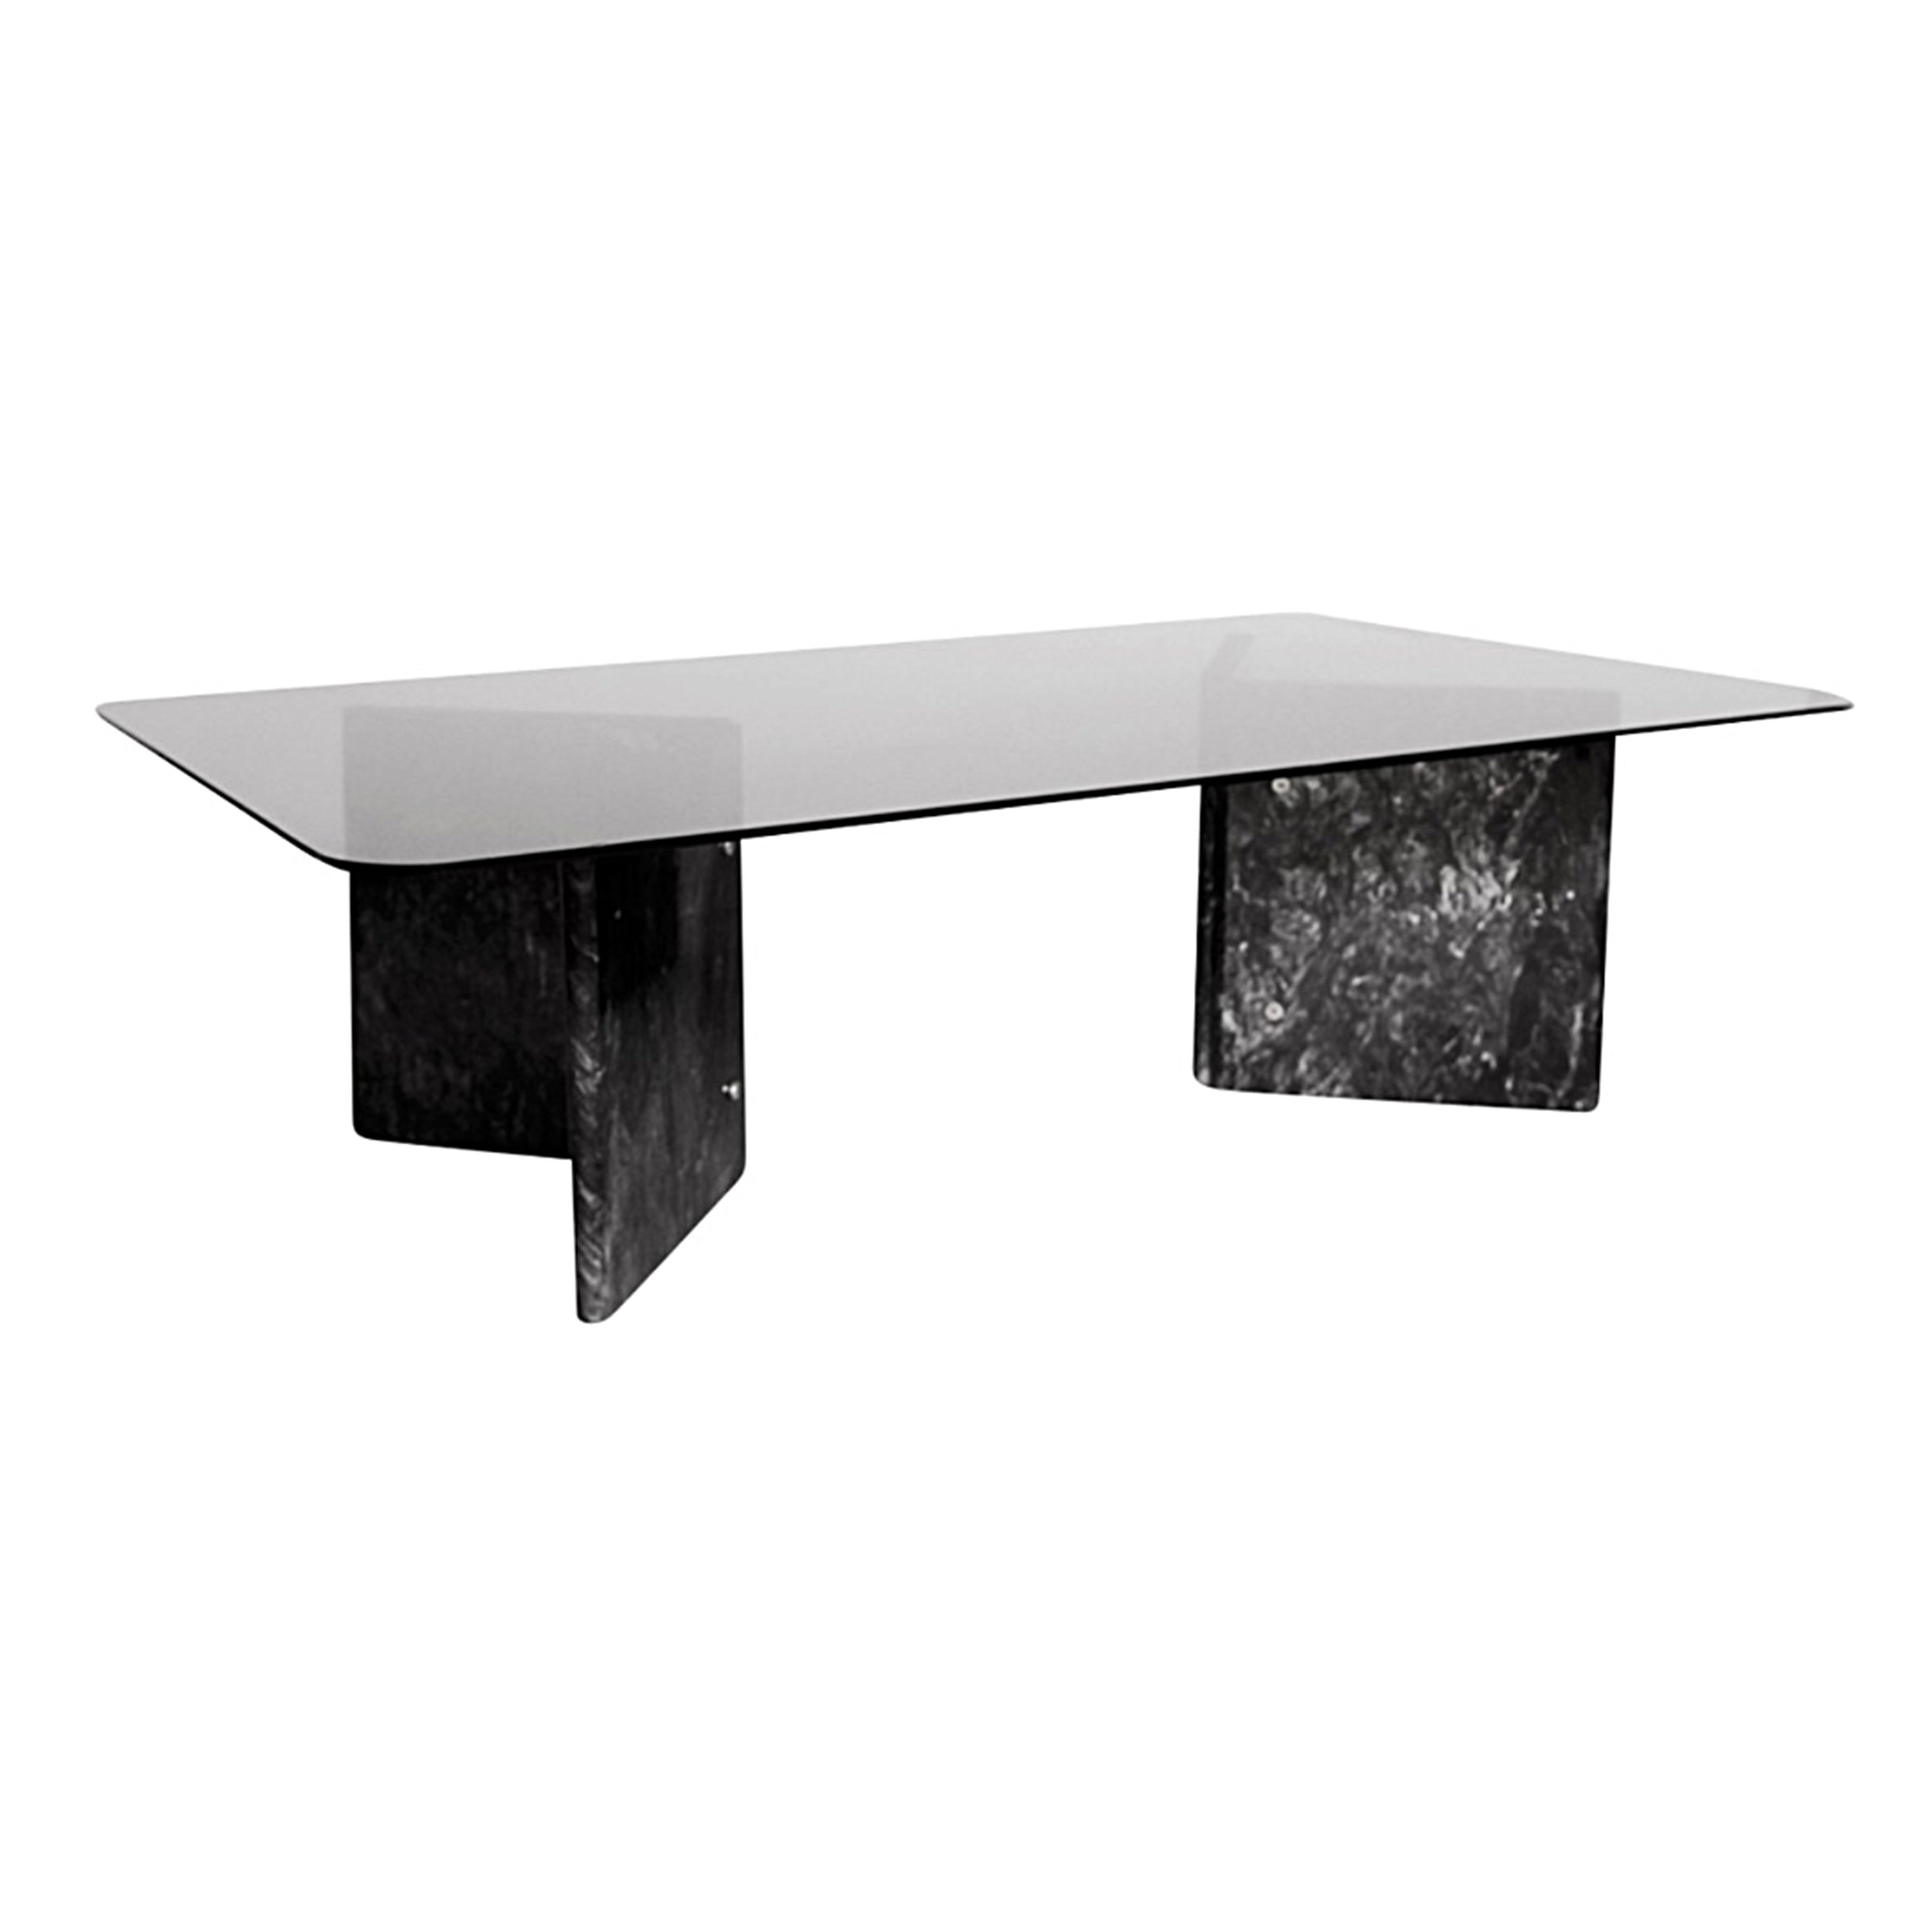 Black Carrara Marble Coffee Table with Glass Top